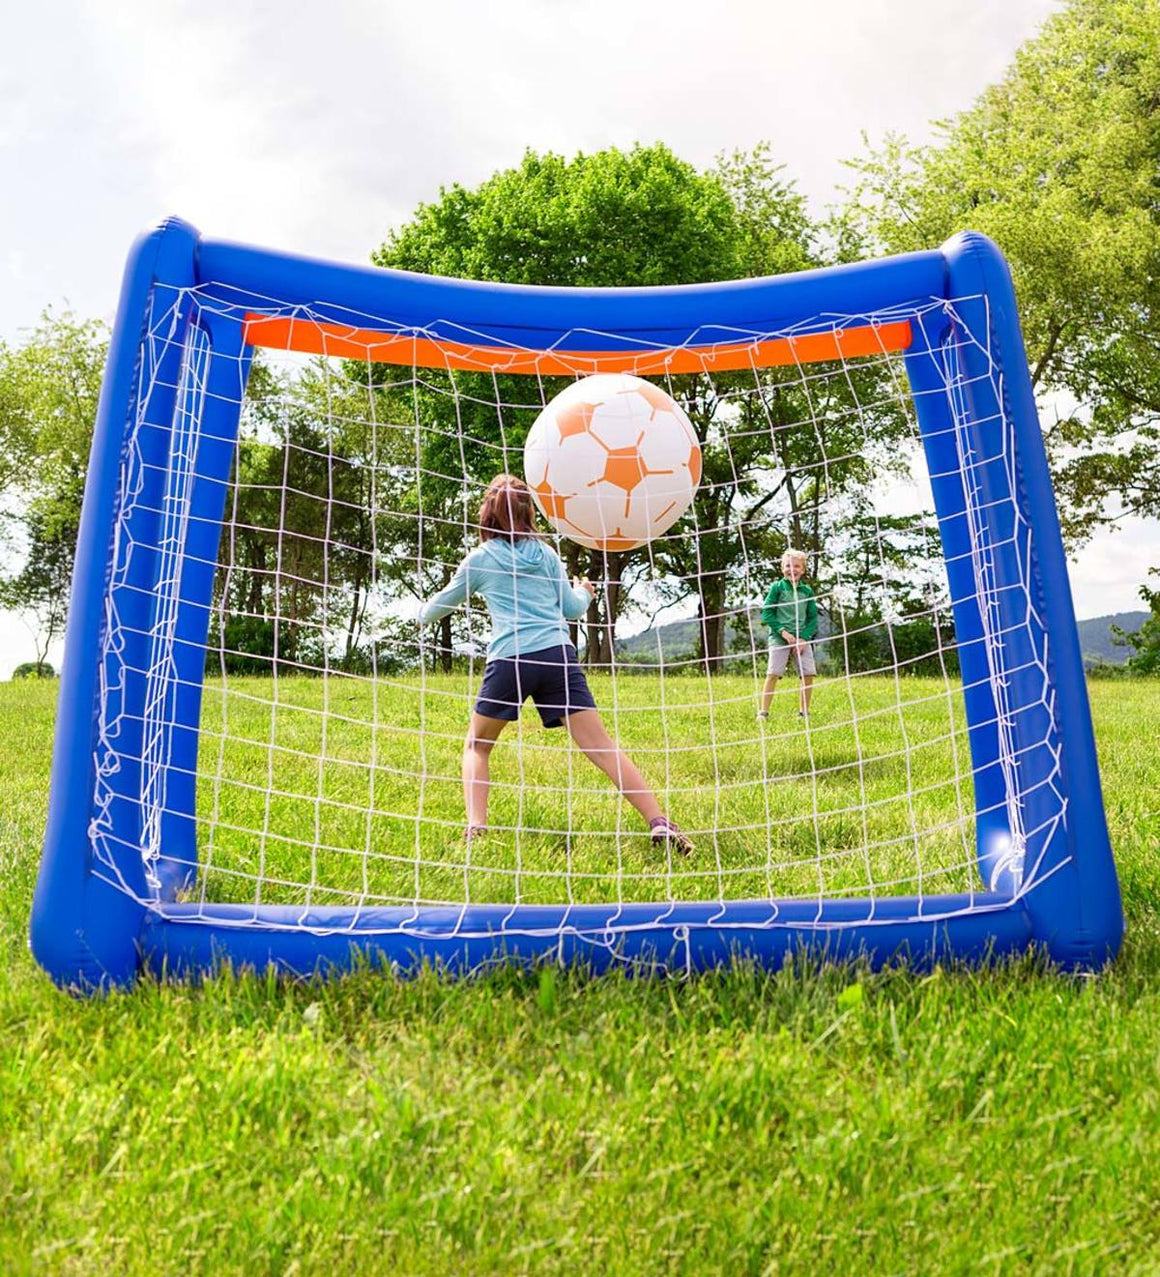 Hearth Song Toys Hearth Song Giant Inflatable Soccer